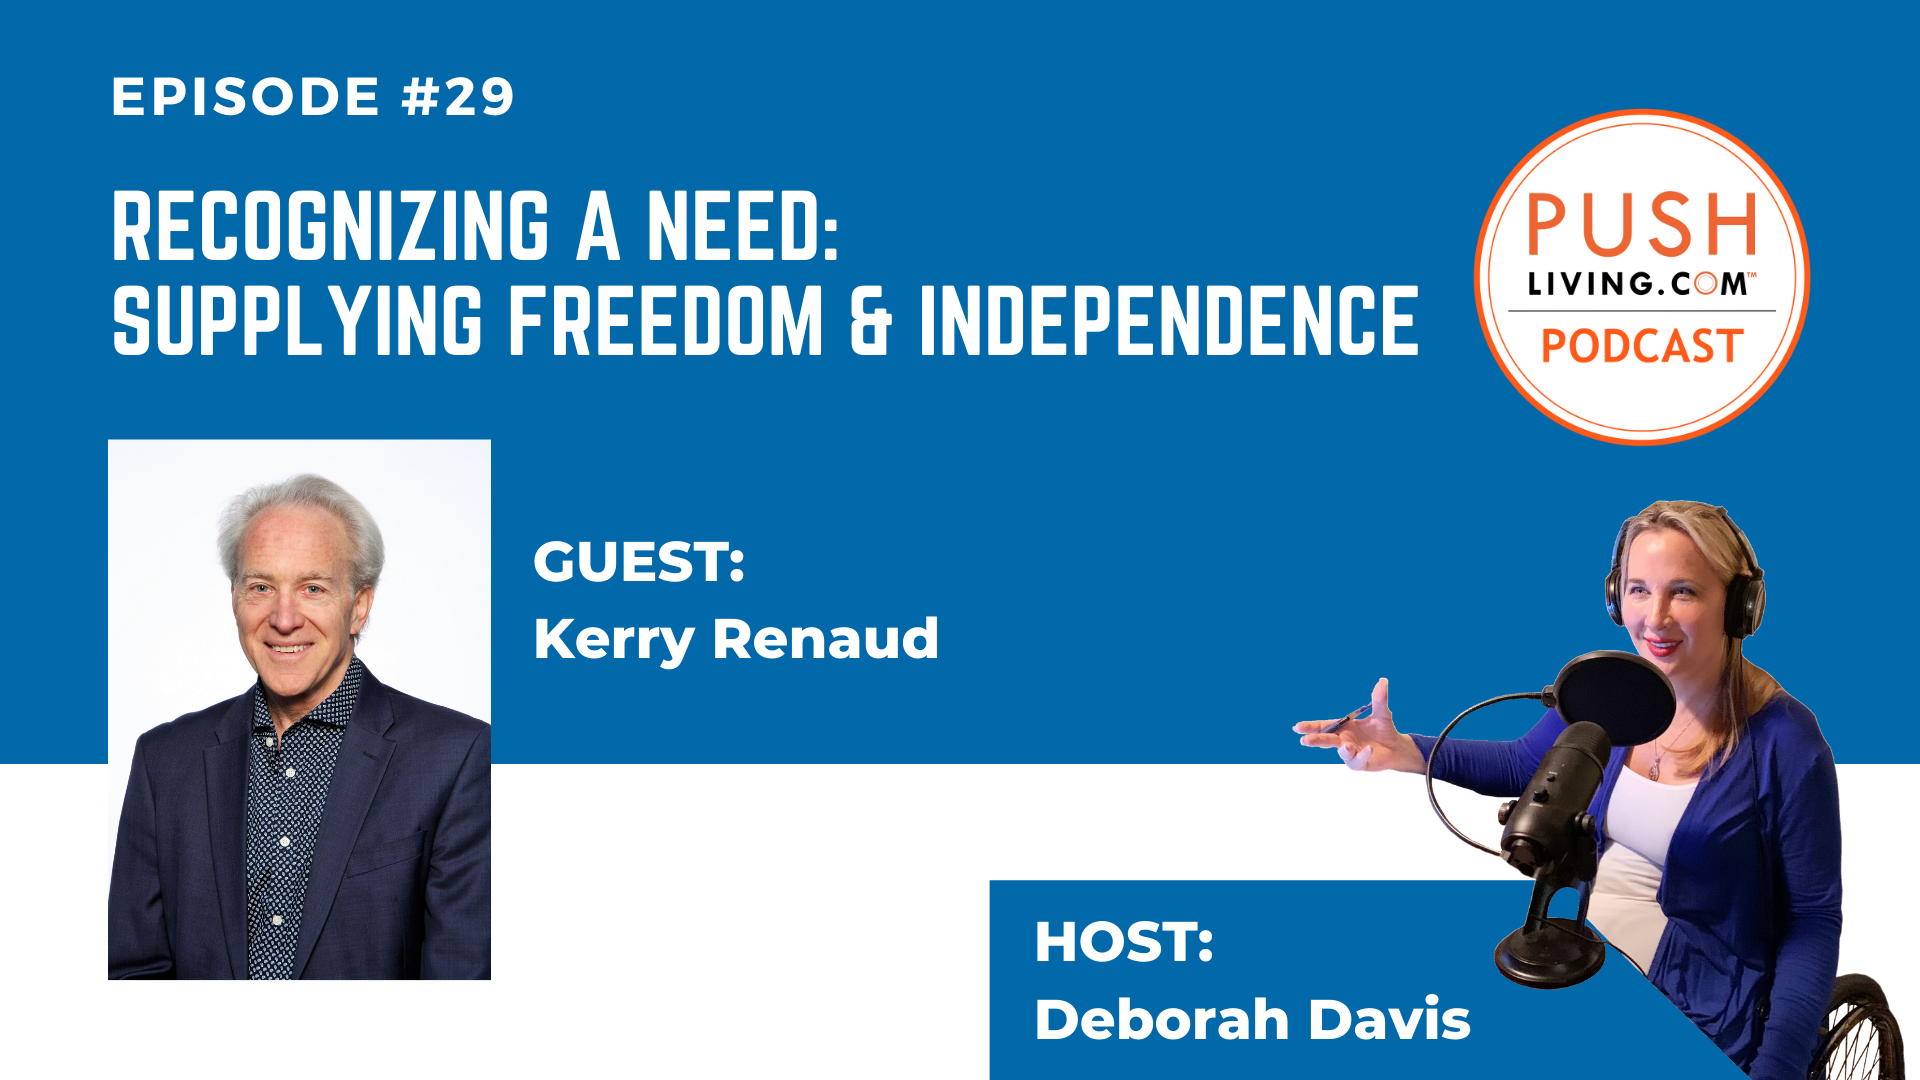 Podcast29 Cover - PUSHLiving Podcast #29: Recognizing a Need - Supplying Freedom & Independence with Kerry Renaud